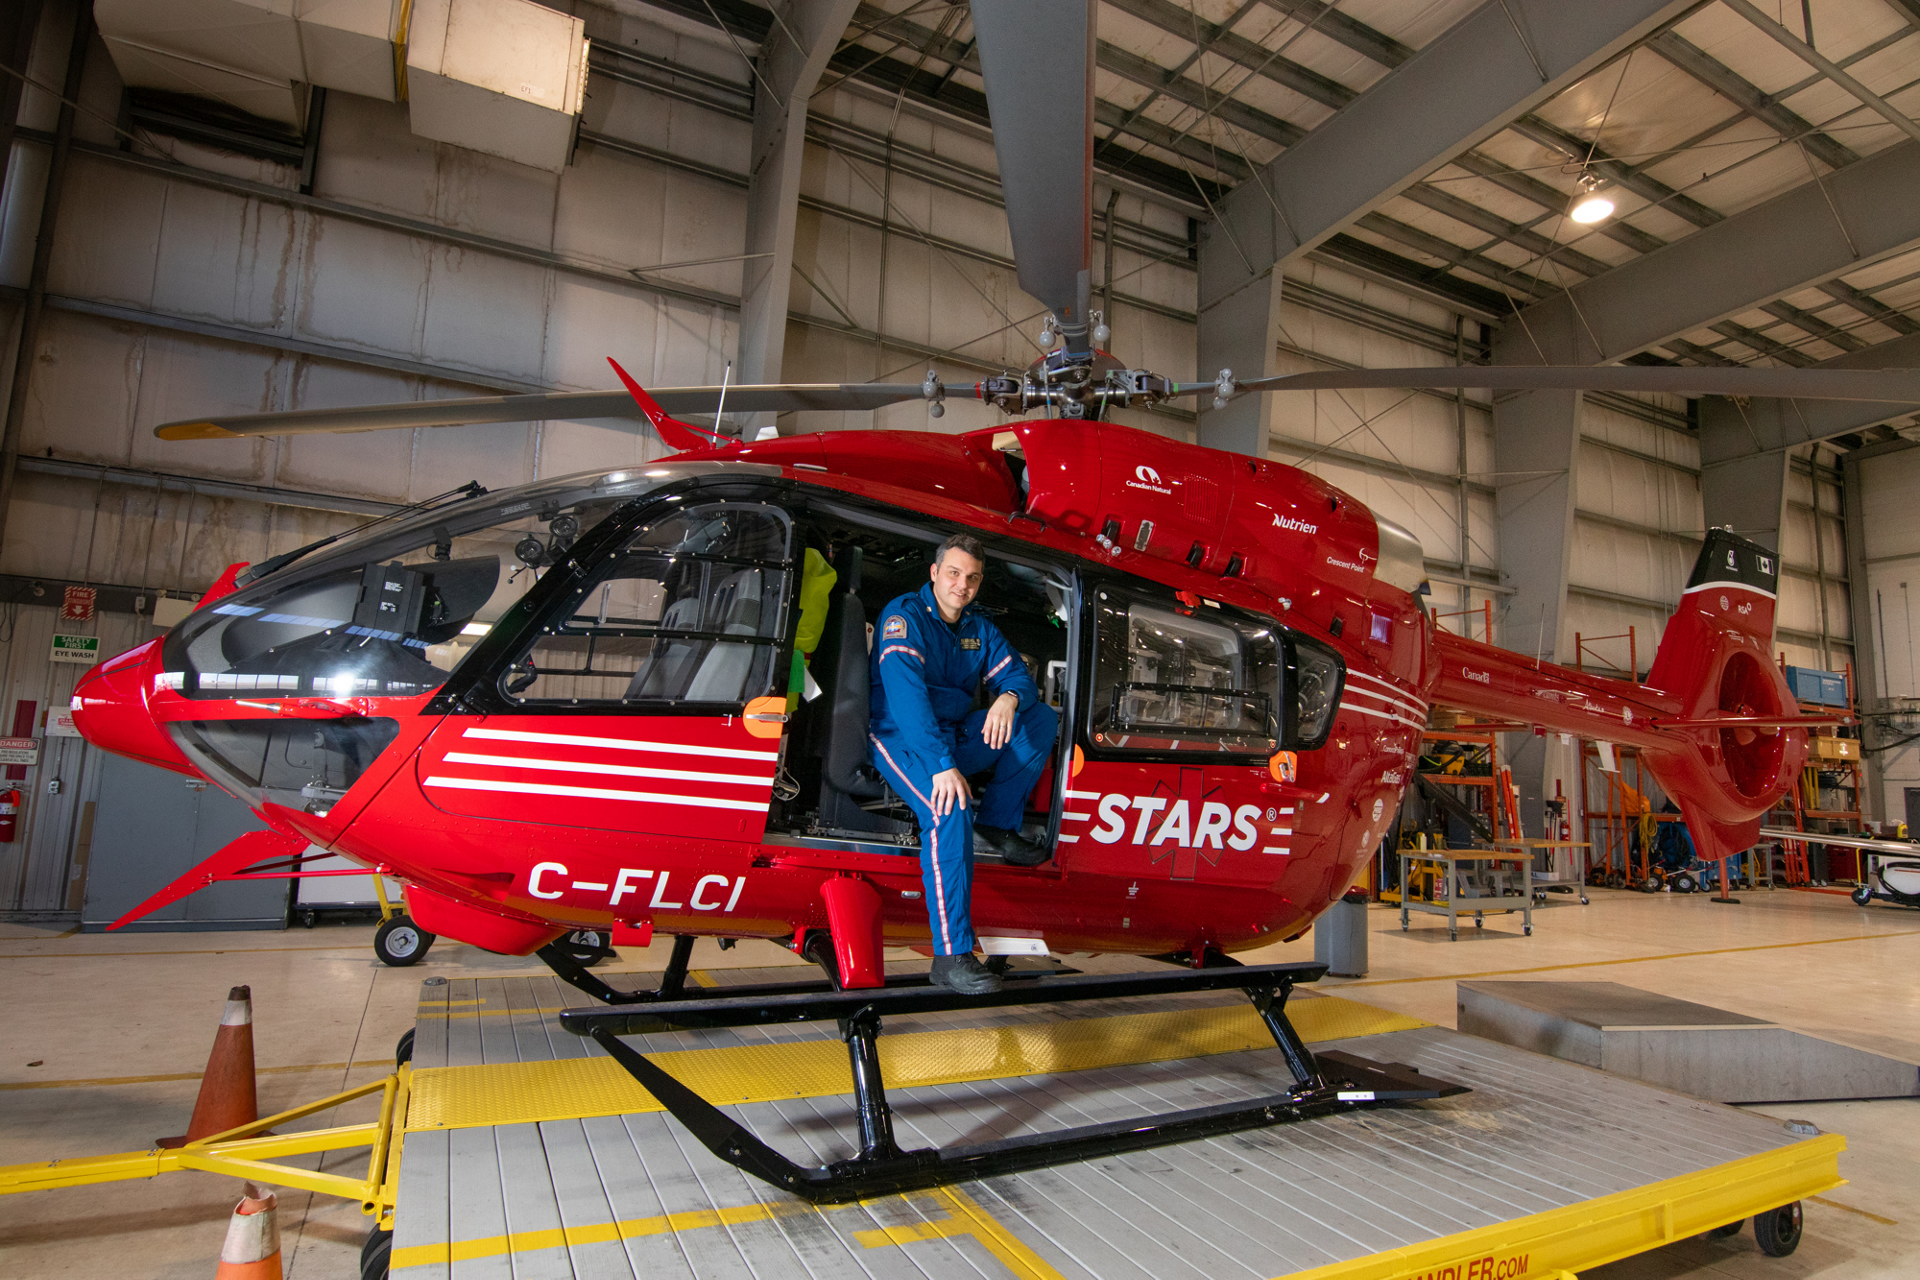 Greg Barton, STARS flight paramedic has been a paramedic for 27 years, 18 of which have been with STARS.